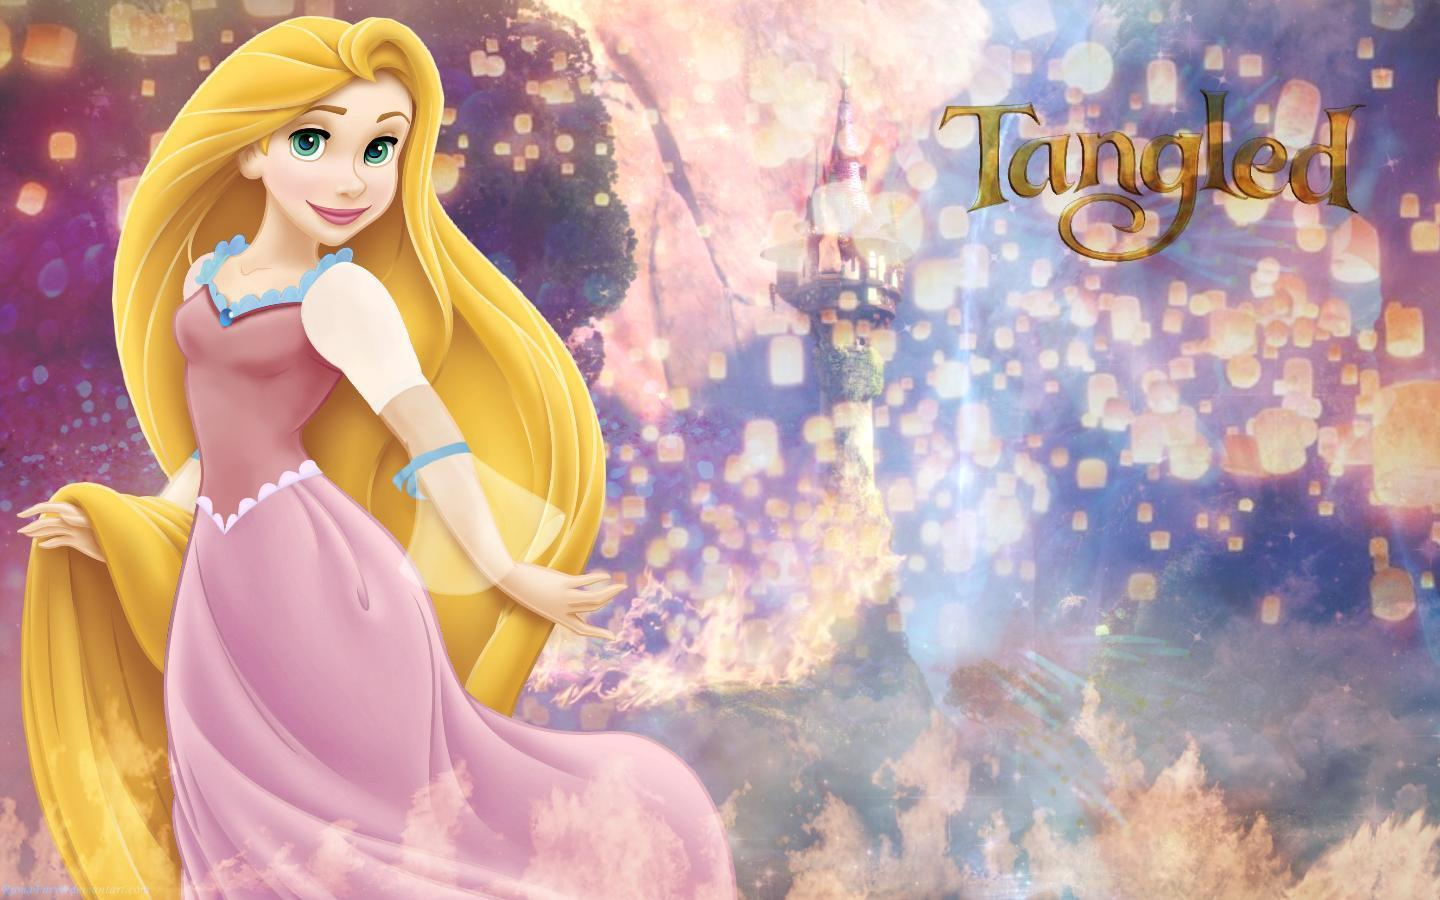 wallpaper tangled cyan pictures-#12